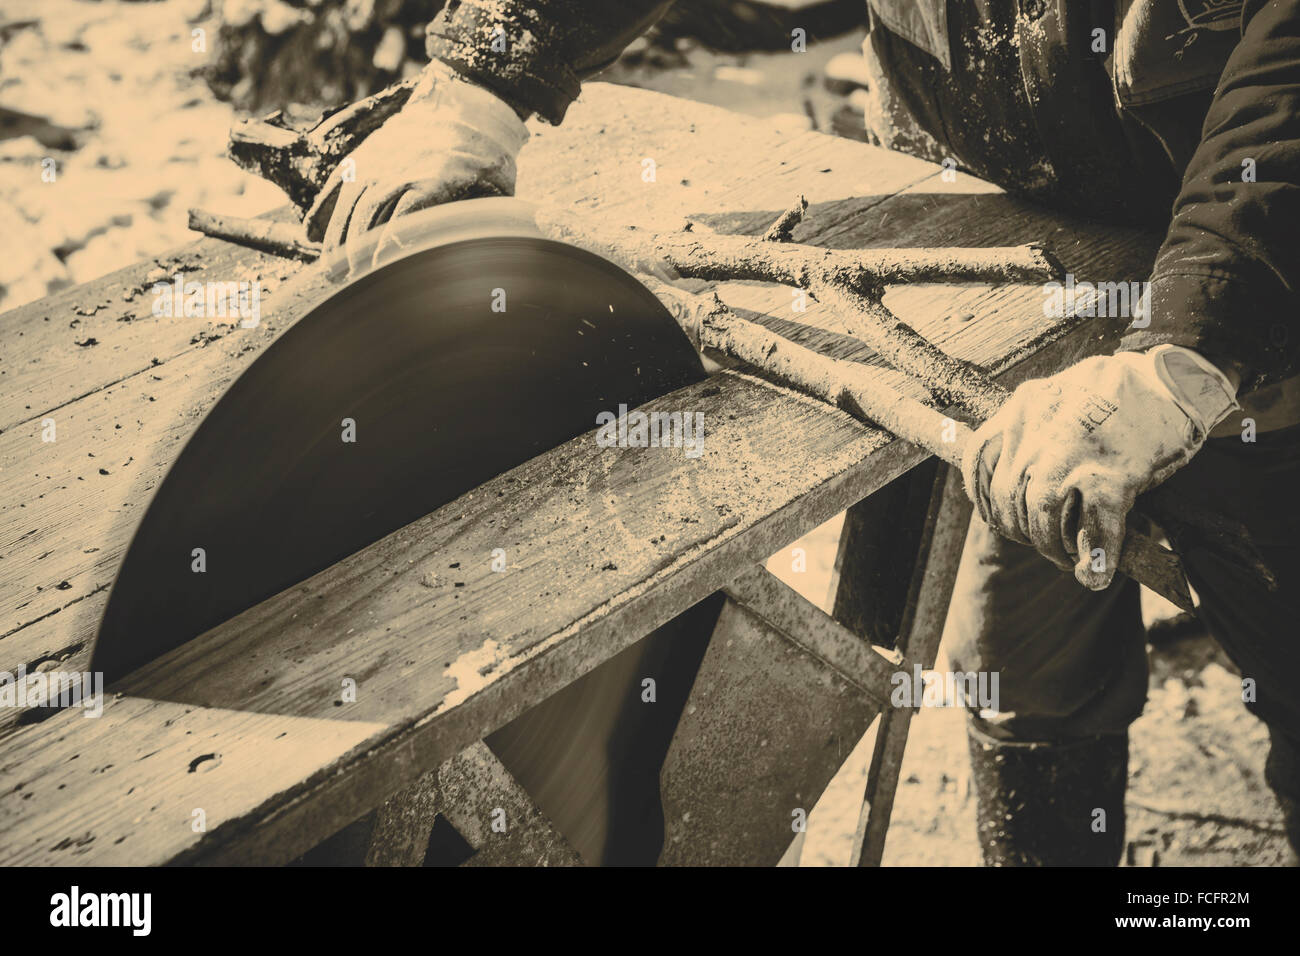 Man working with old handmade circular saw blade - Stock Image